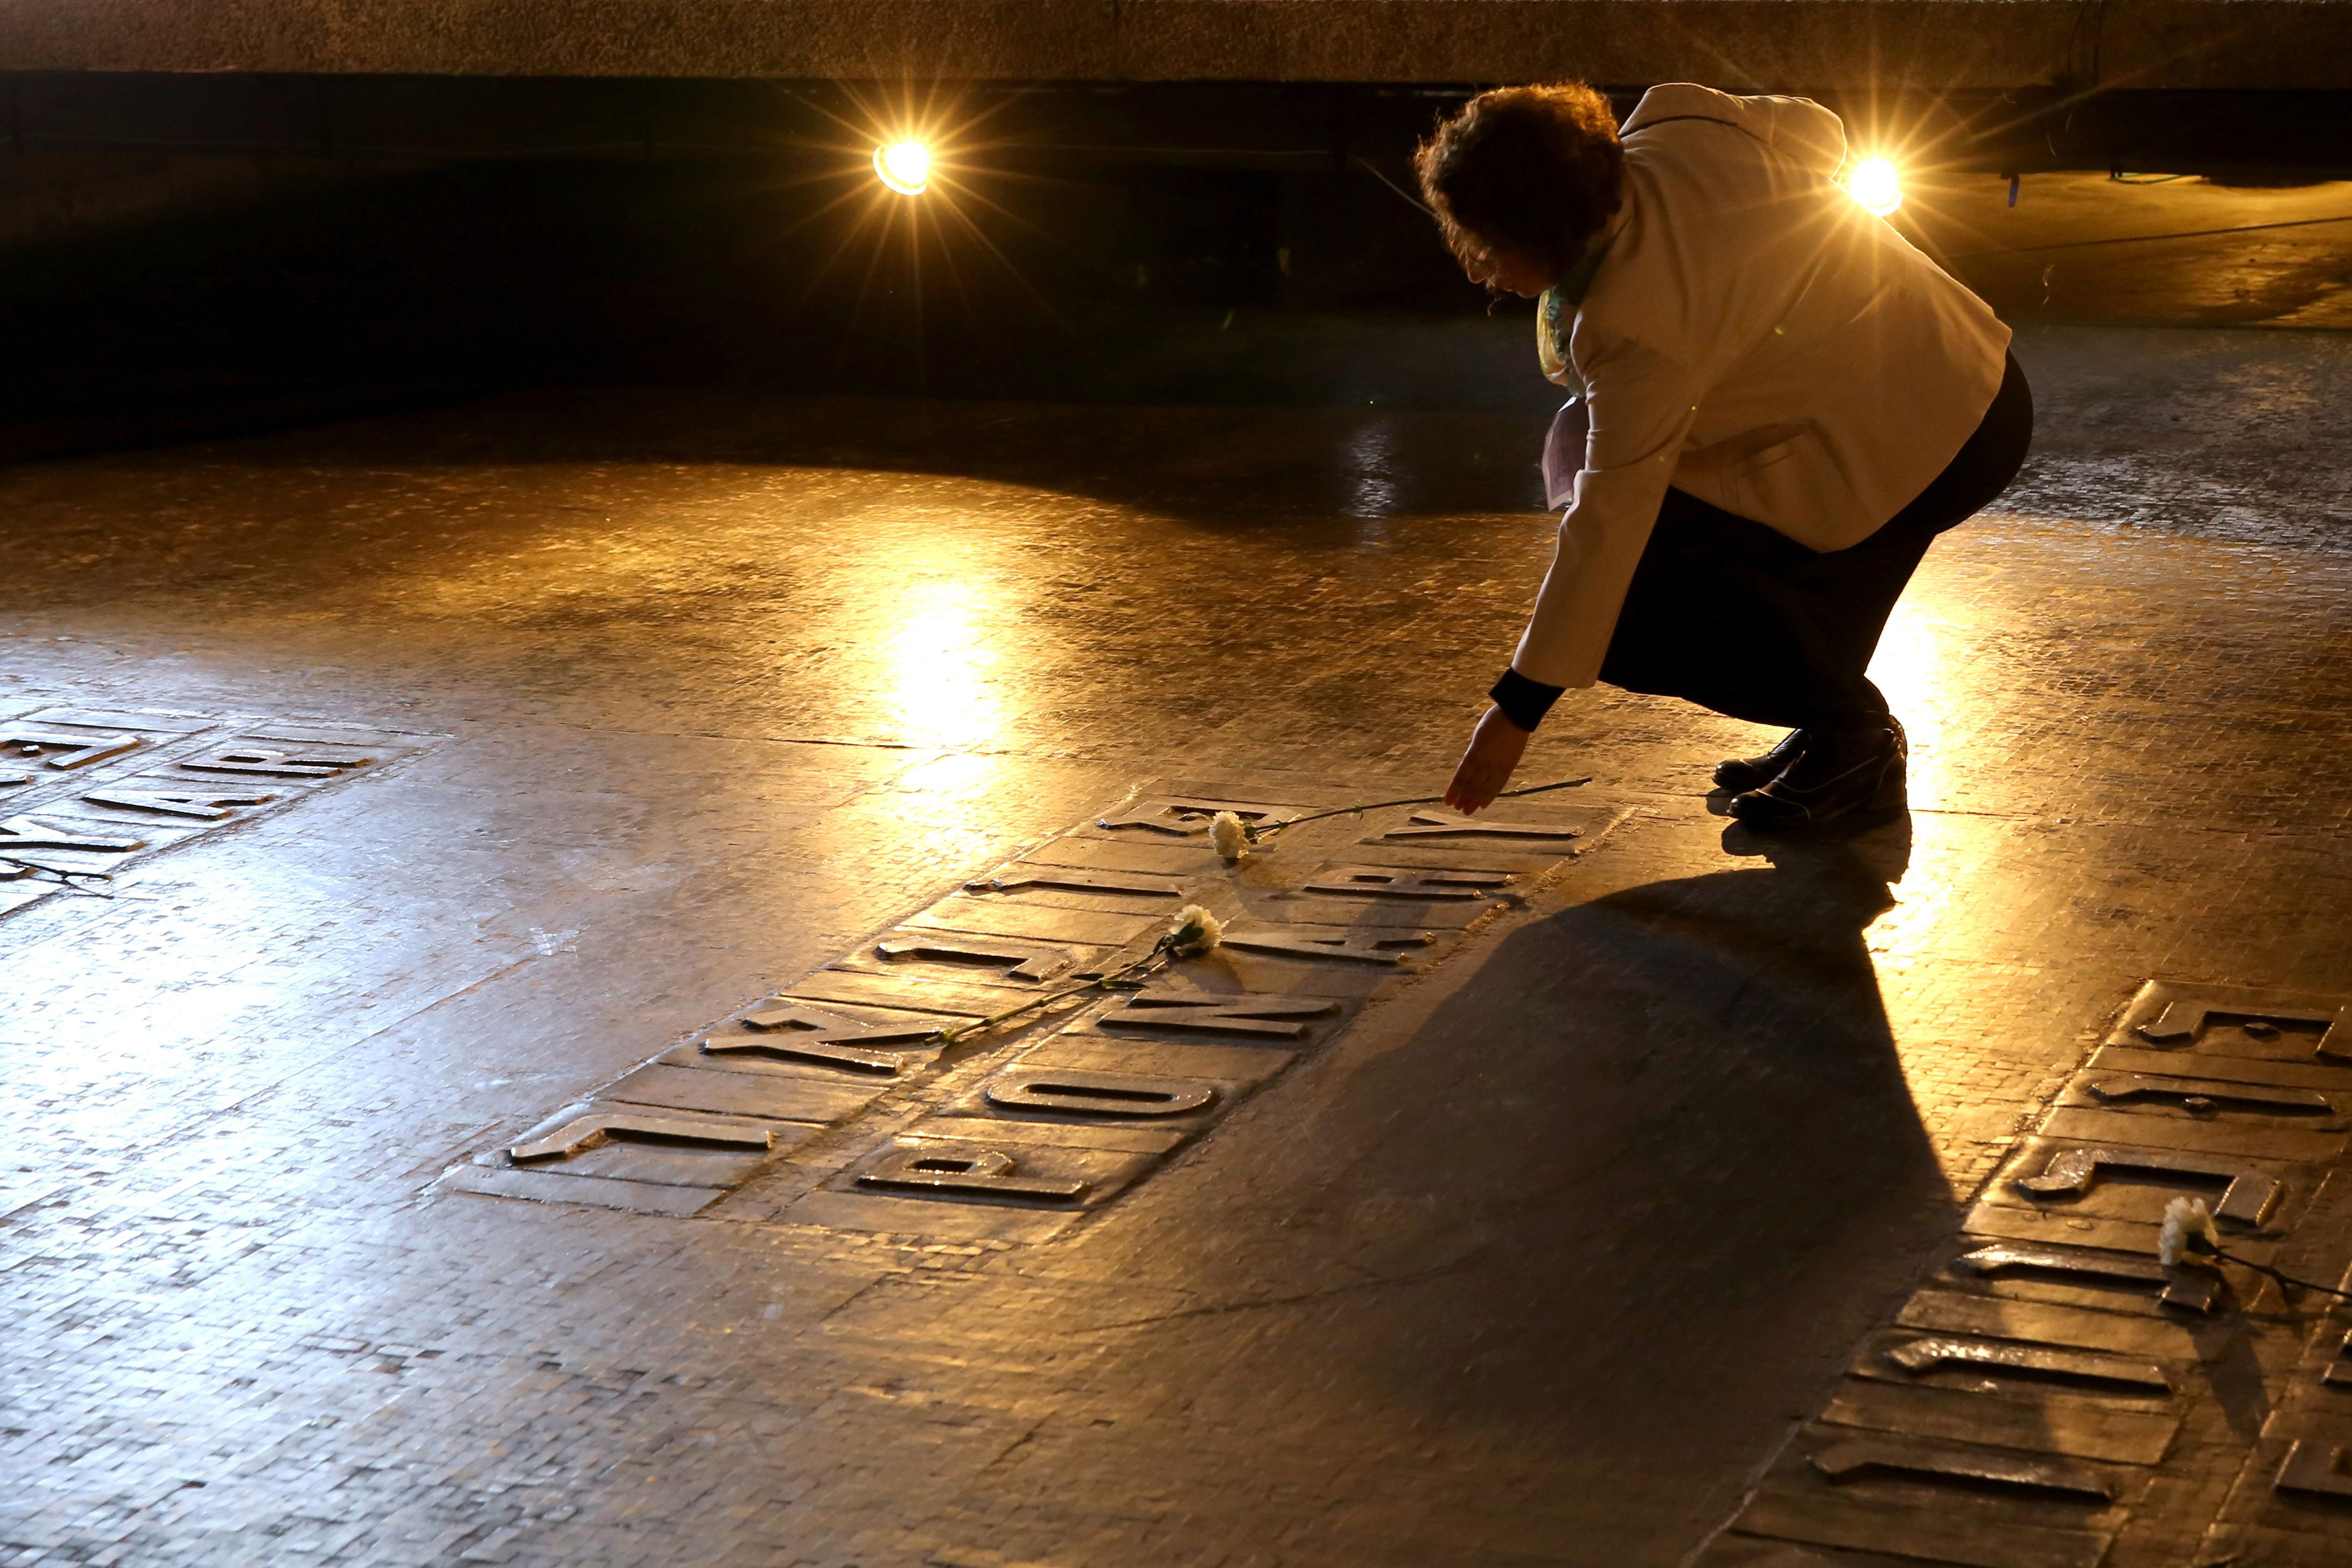 An Israeli relative of Holocaust victims lays a flower at the Hall of Remembrance where the names of major death and concentration camps are written during a ceremony marking the annual Holocaust Remembrance Day at the Yad Vashem Holocaust Memorial in Jerusalem on May 5, 2016. The state of Israel marks the annual Memorial Day commemorating the six million Jews murdered by the Nazis in the Holocaust during World War II. / AFP / GALI TIBBON